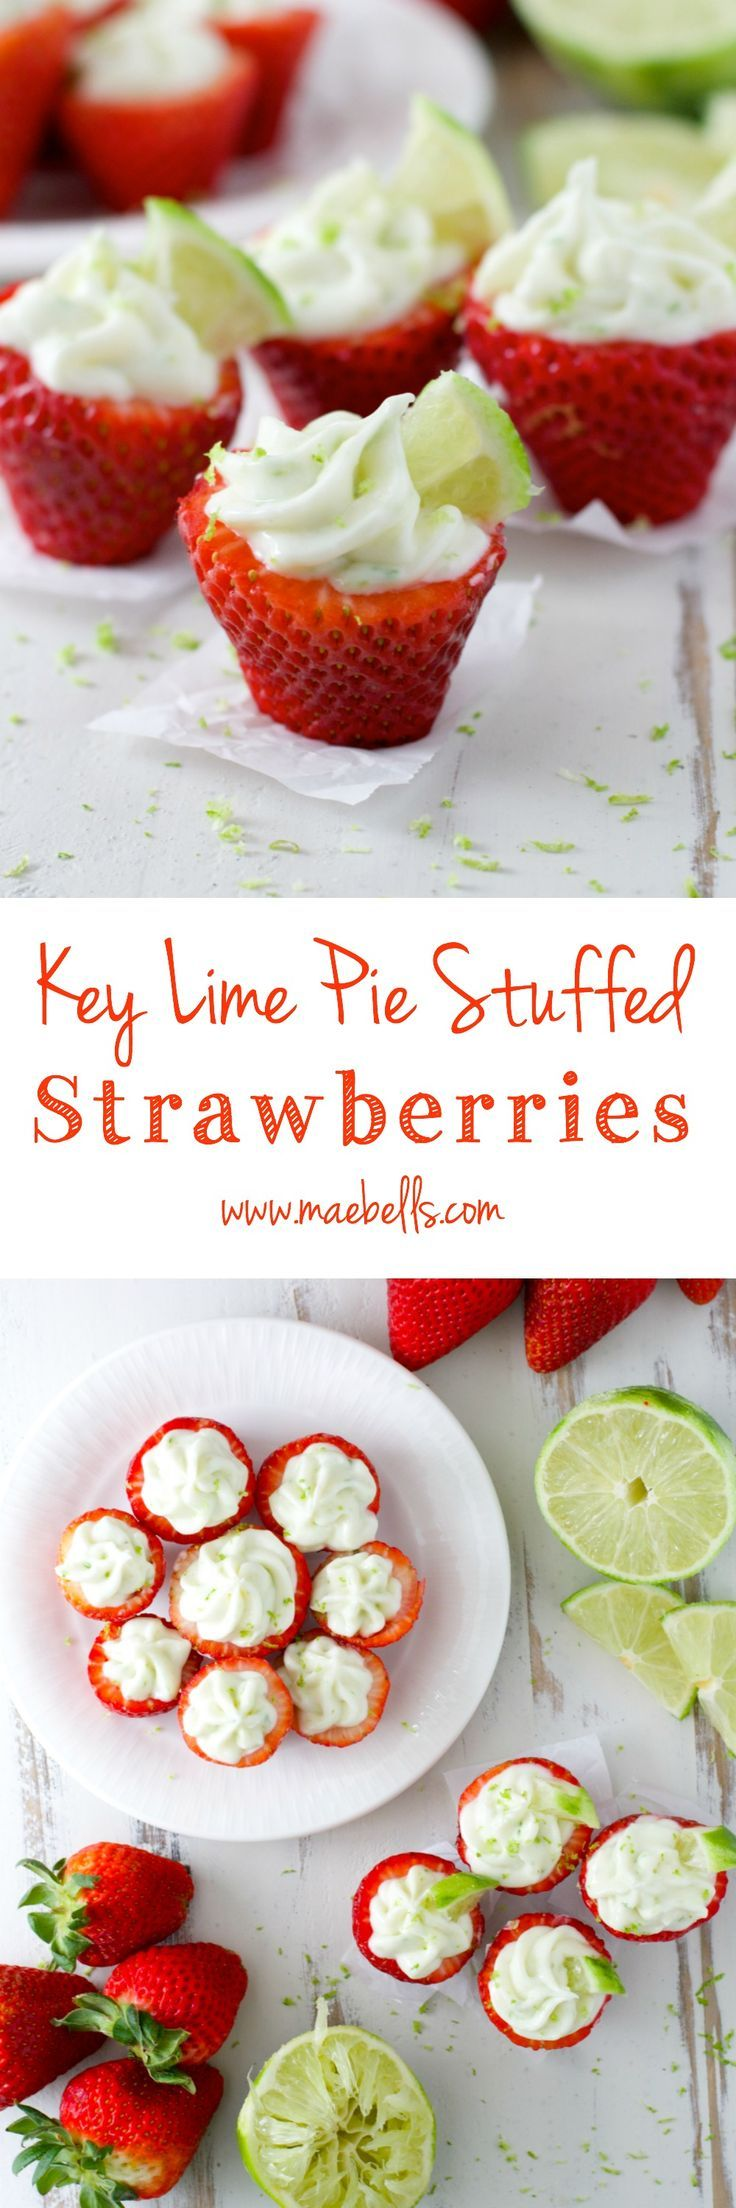 Key Lime Pie Stuffed Strawberries, only five ingredients!! The perfect spring dessert! www.maebells.com